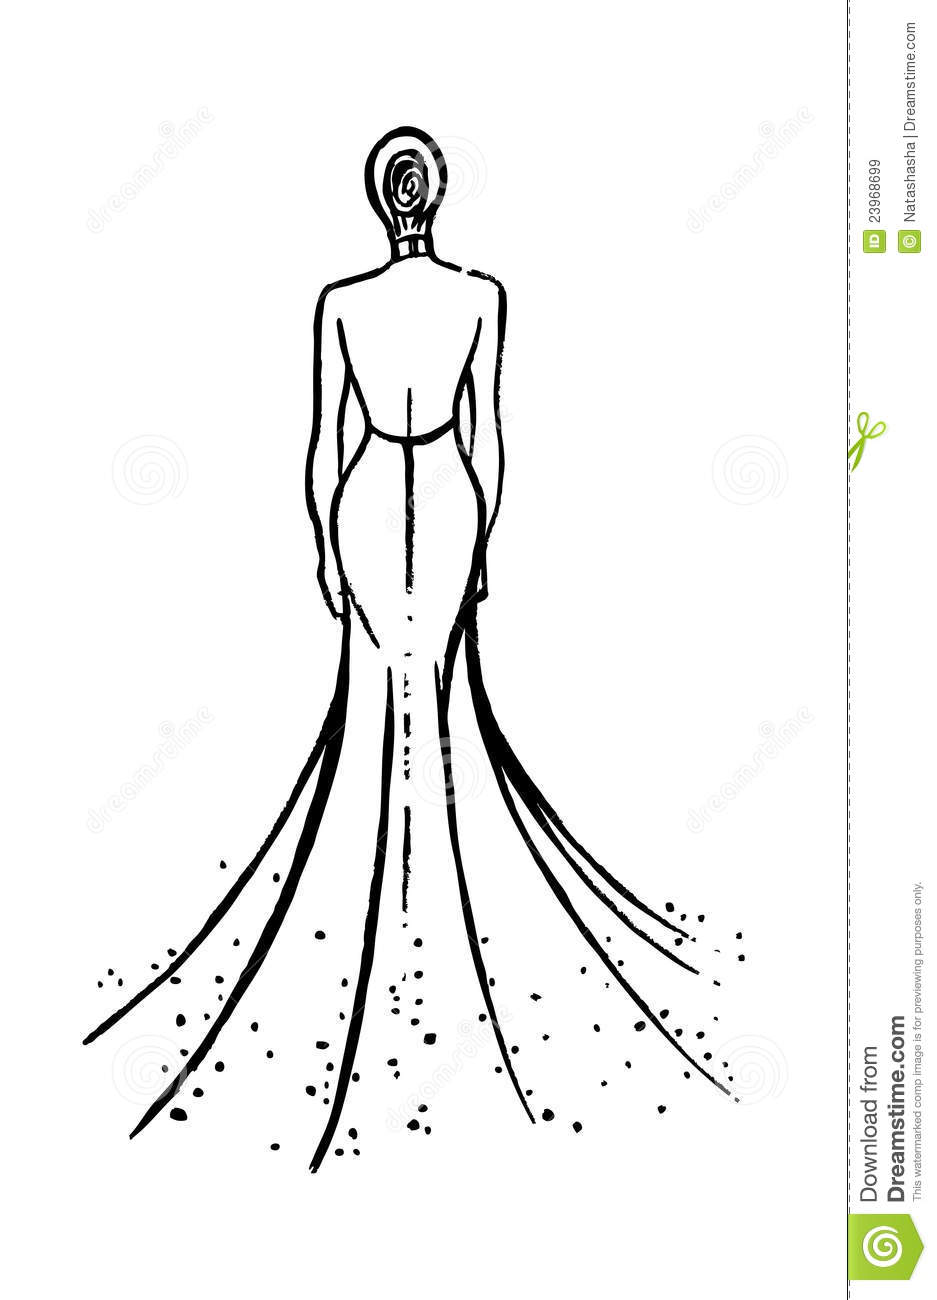 Fashion Model Sketch Royalty Free Stock Images - Image: 23968699